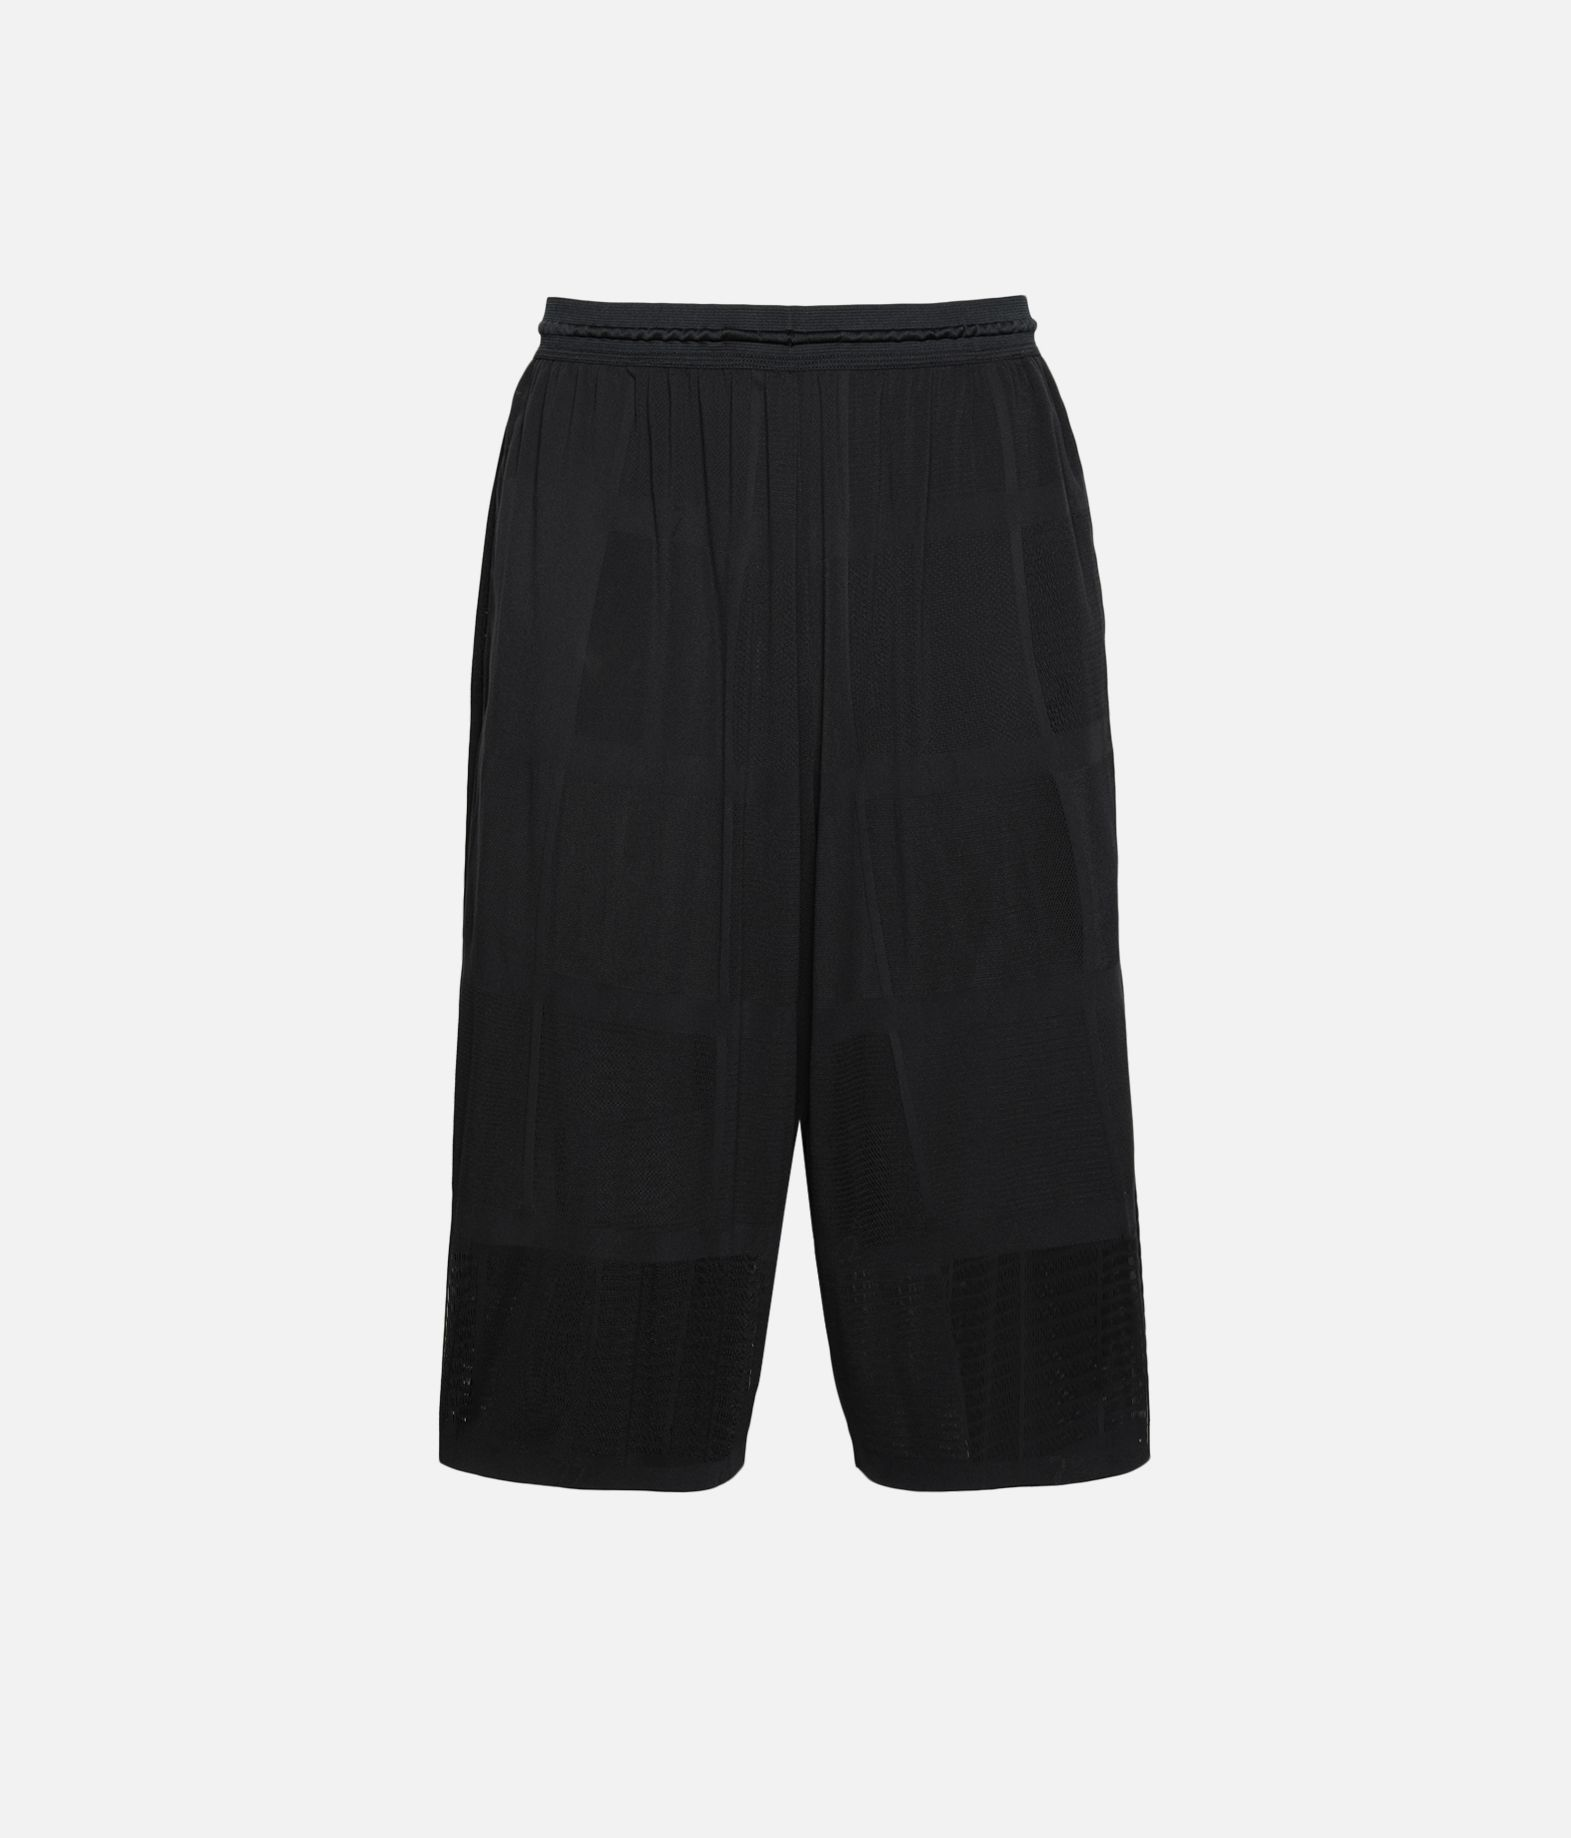 Y-3 Y-3 Patchwork Shorts Shorts Man f